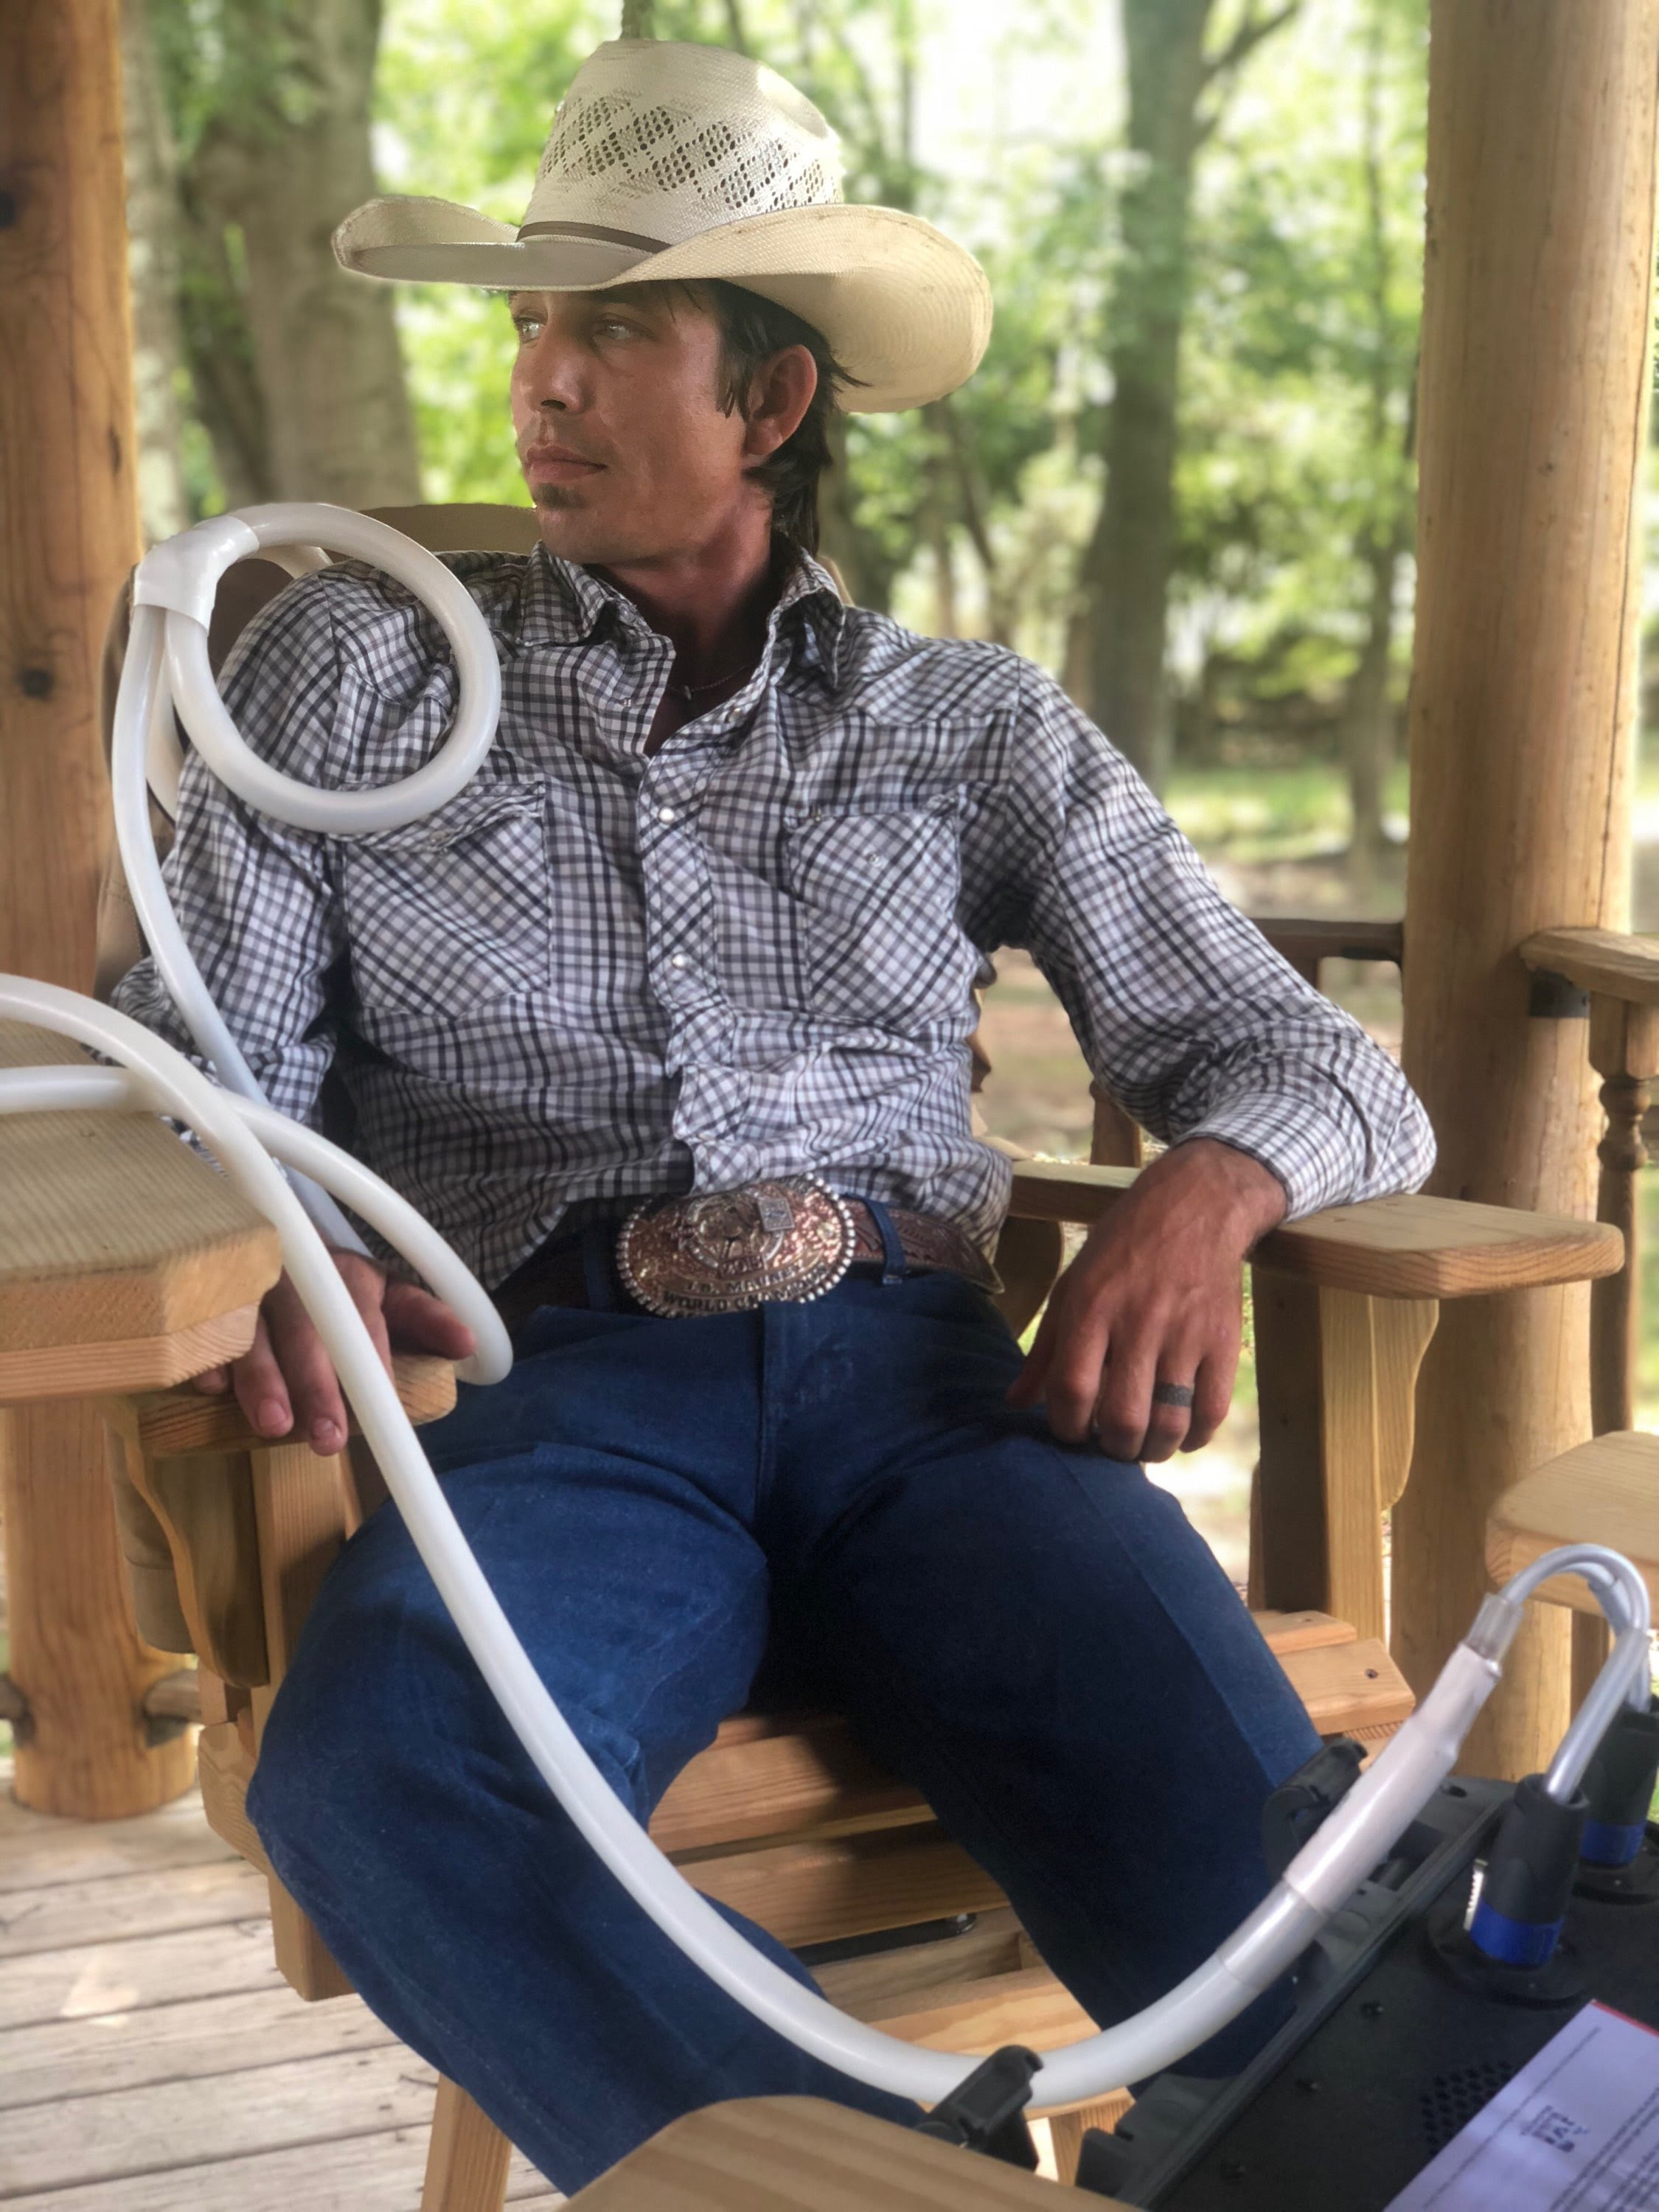 JB Mauney / EquiPulse Treatment    2X PBR World Champion Married to @samanthalynemauney Father to Bella Mauney and occasionally ride bulls! #BurnPear